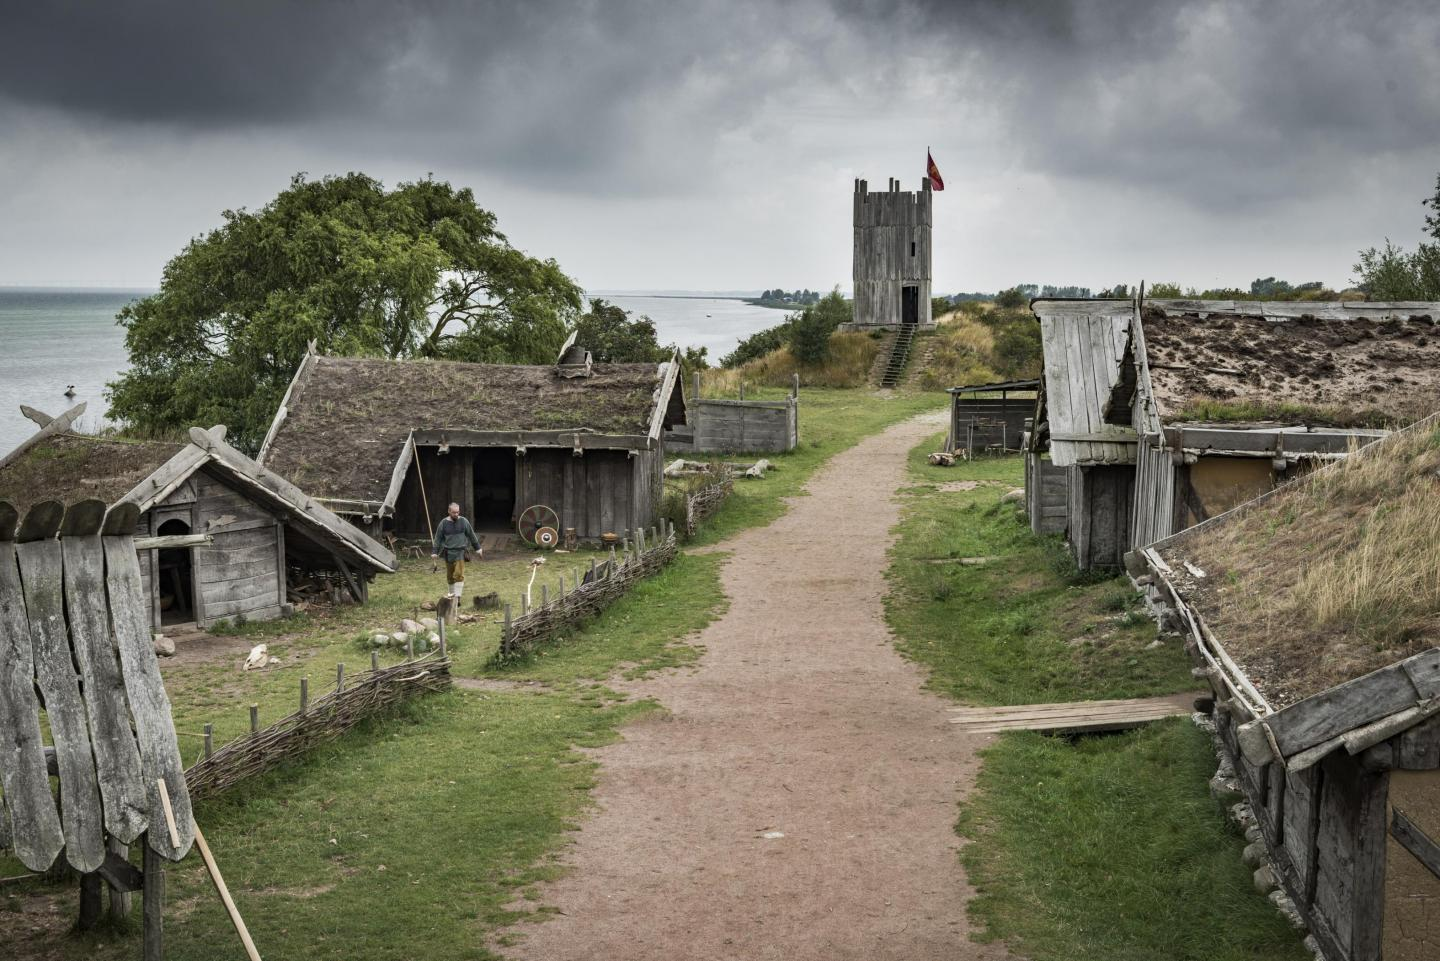 Viking village with gravel road and surrounding wood houses